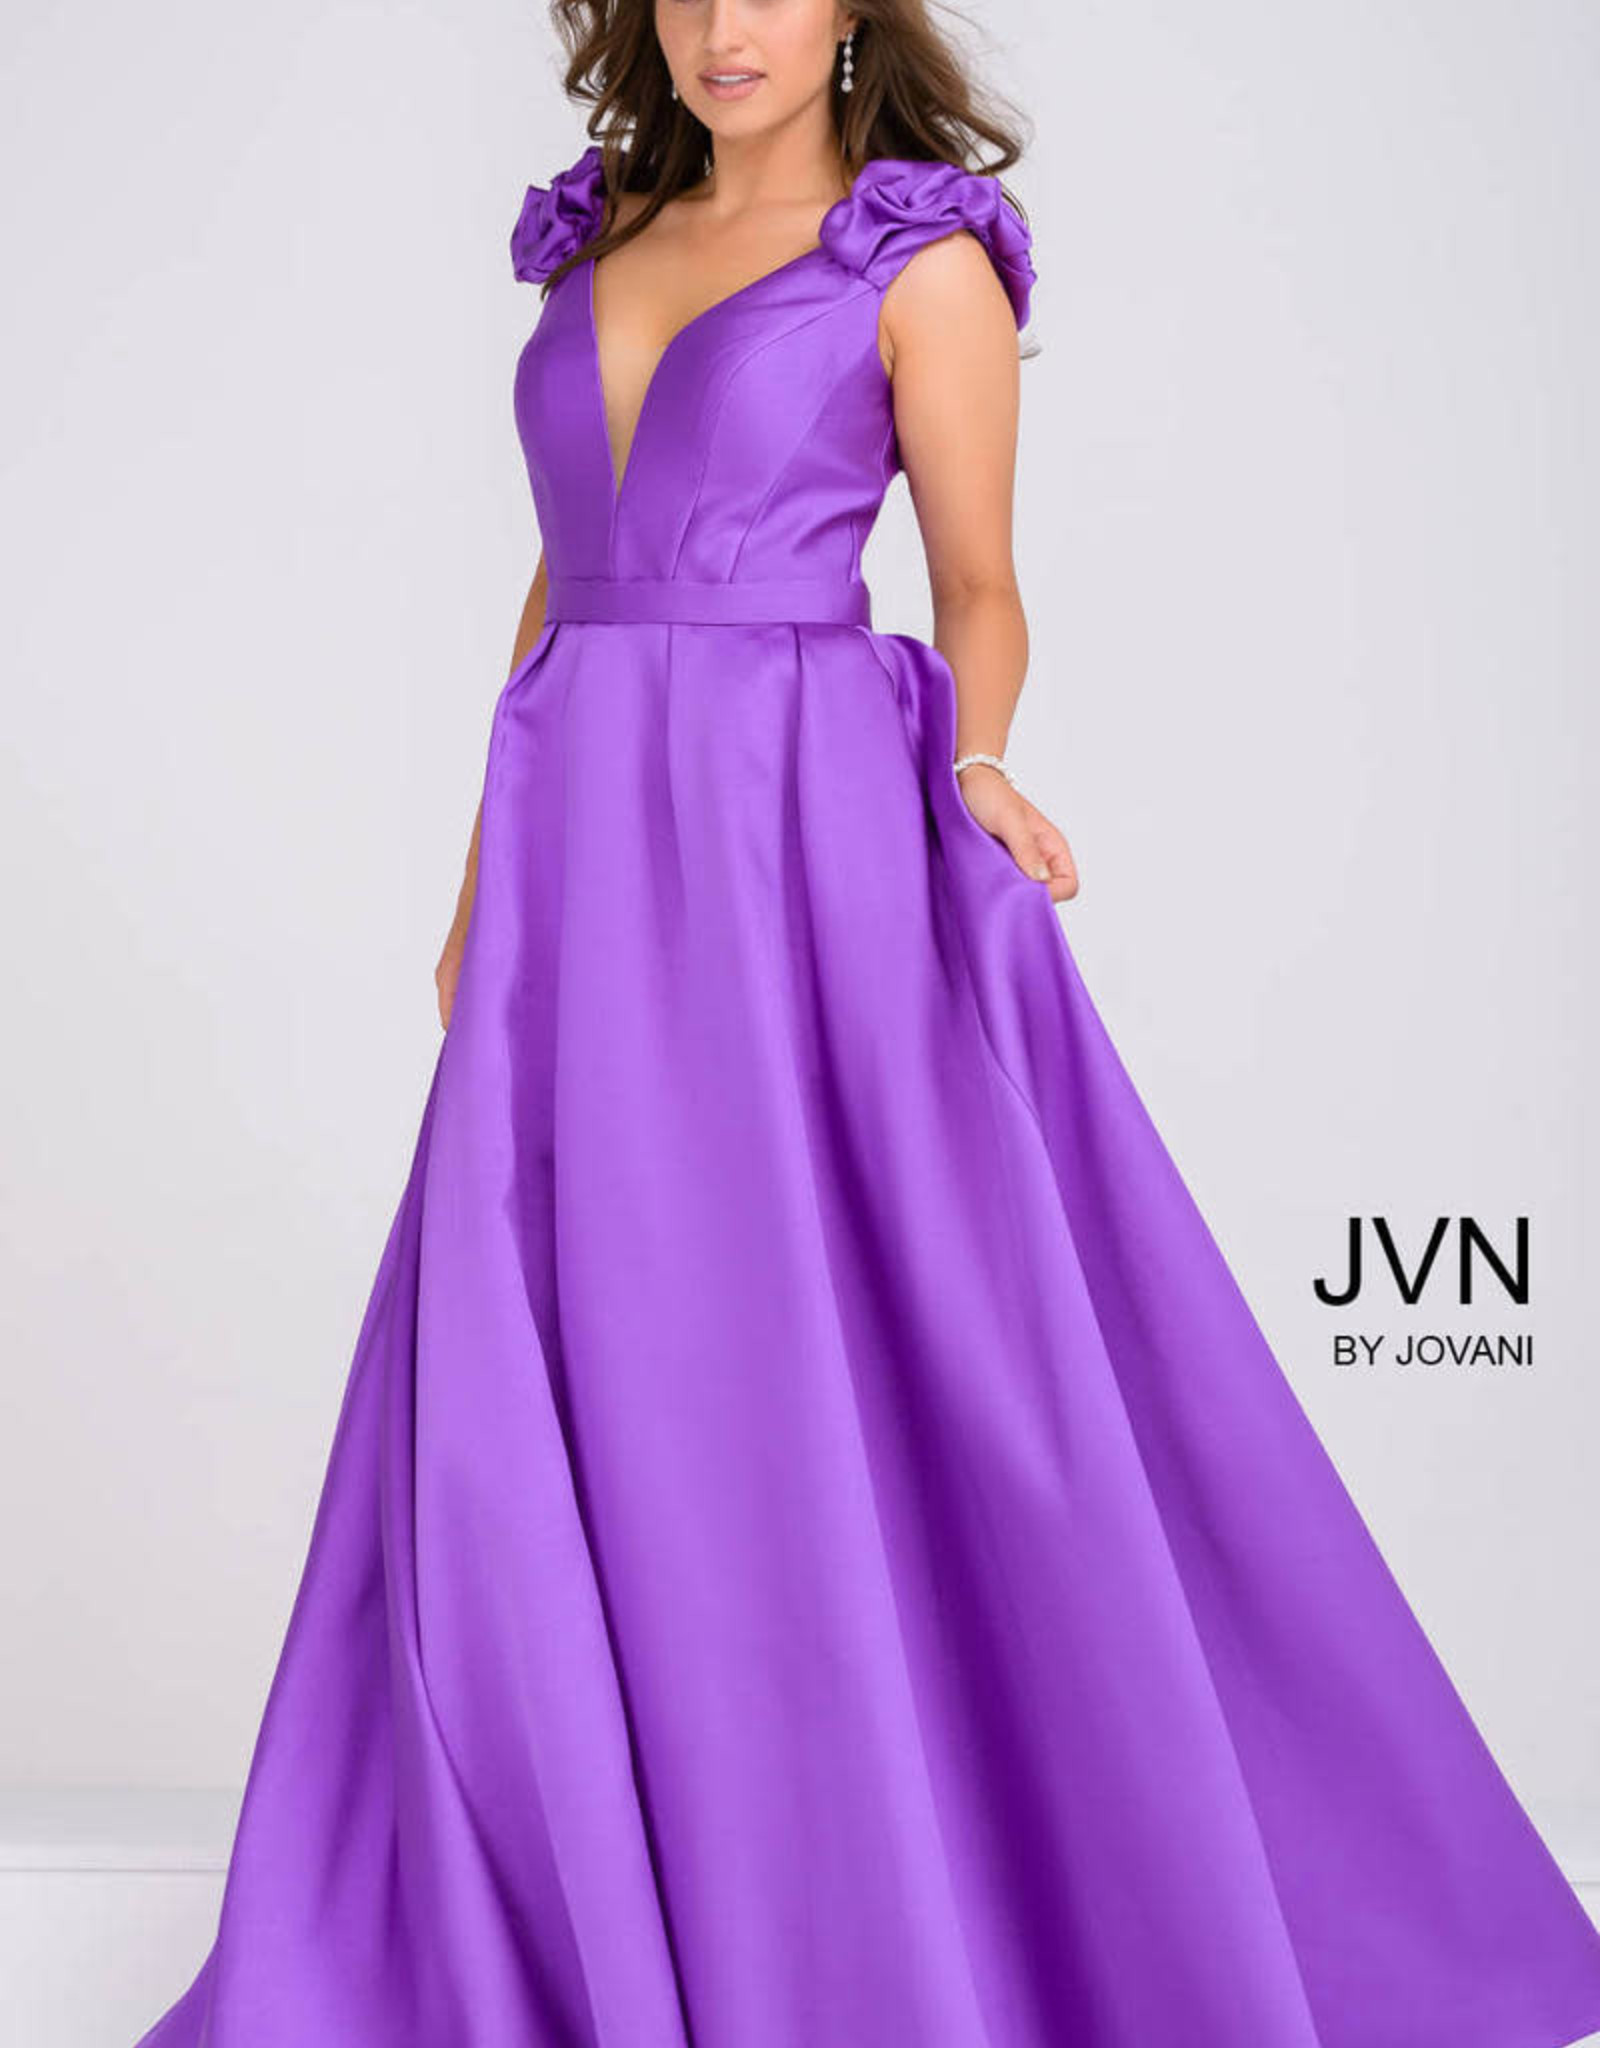 JVN for Jovani JVN for Jovani Size 0